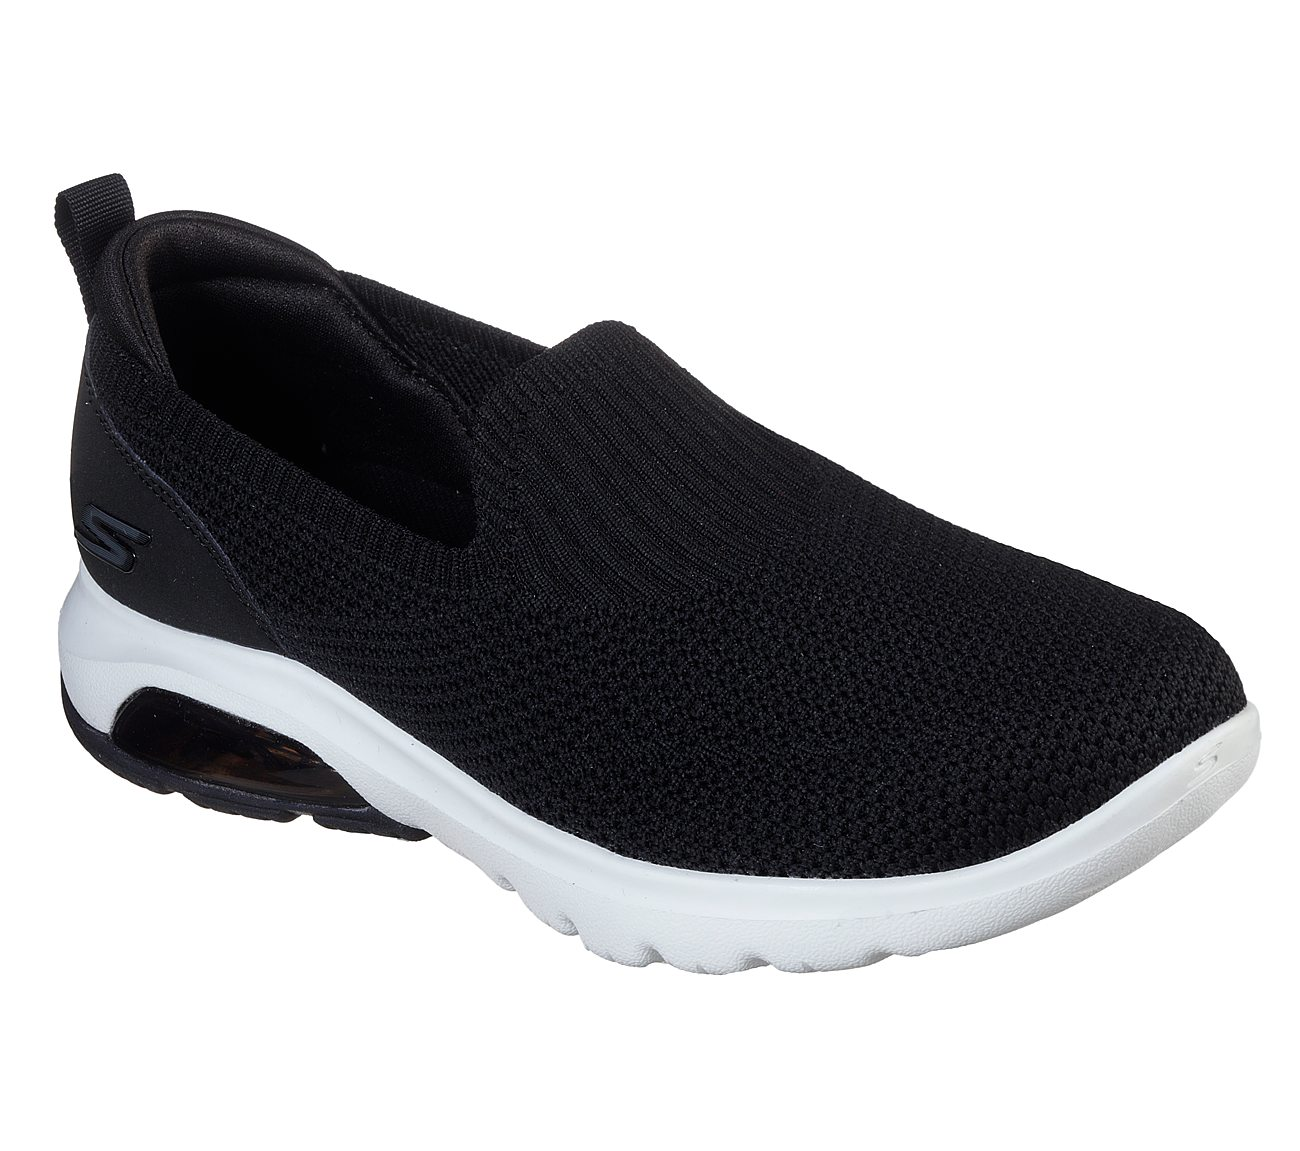 shoes comparable to skechers go walk